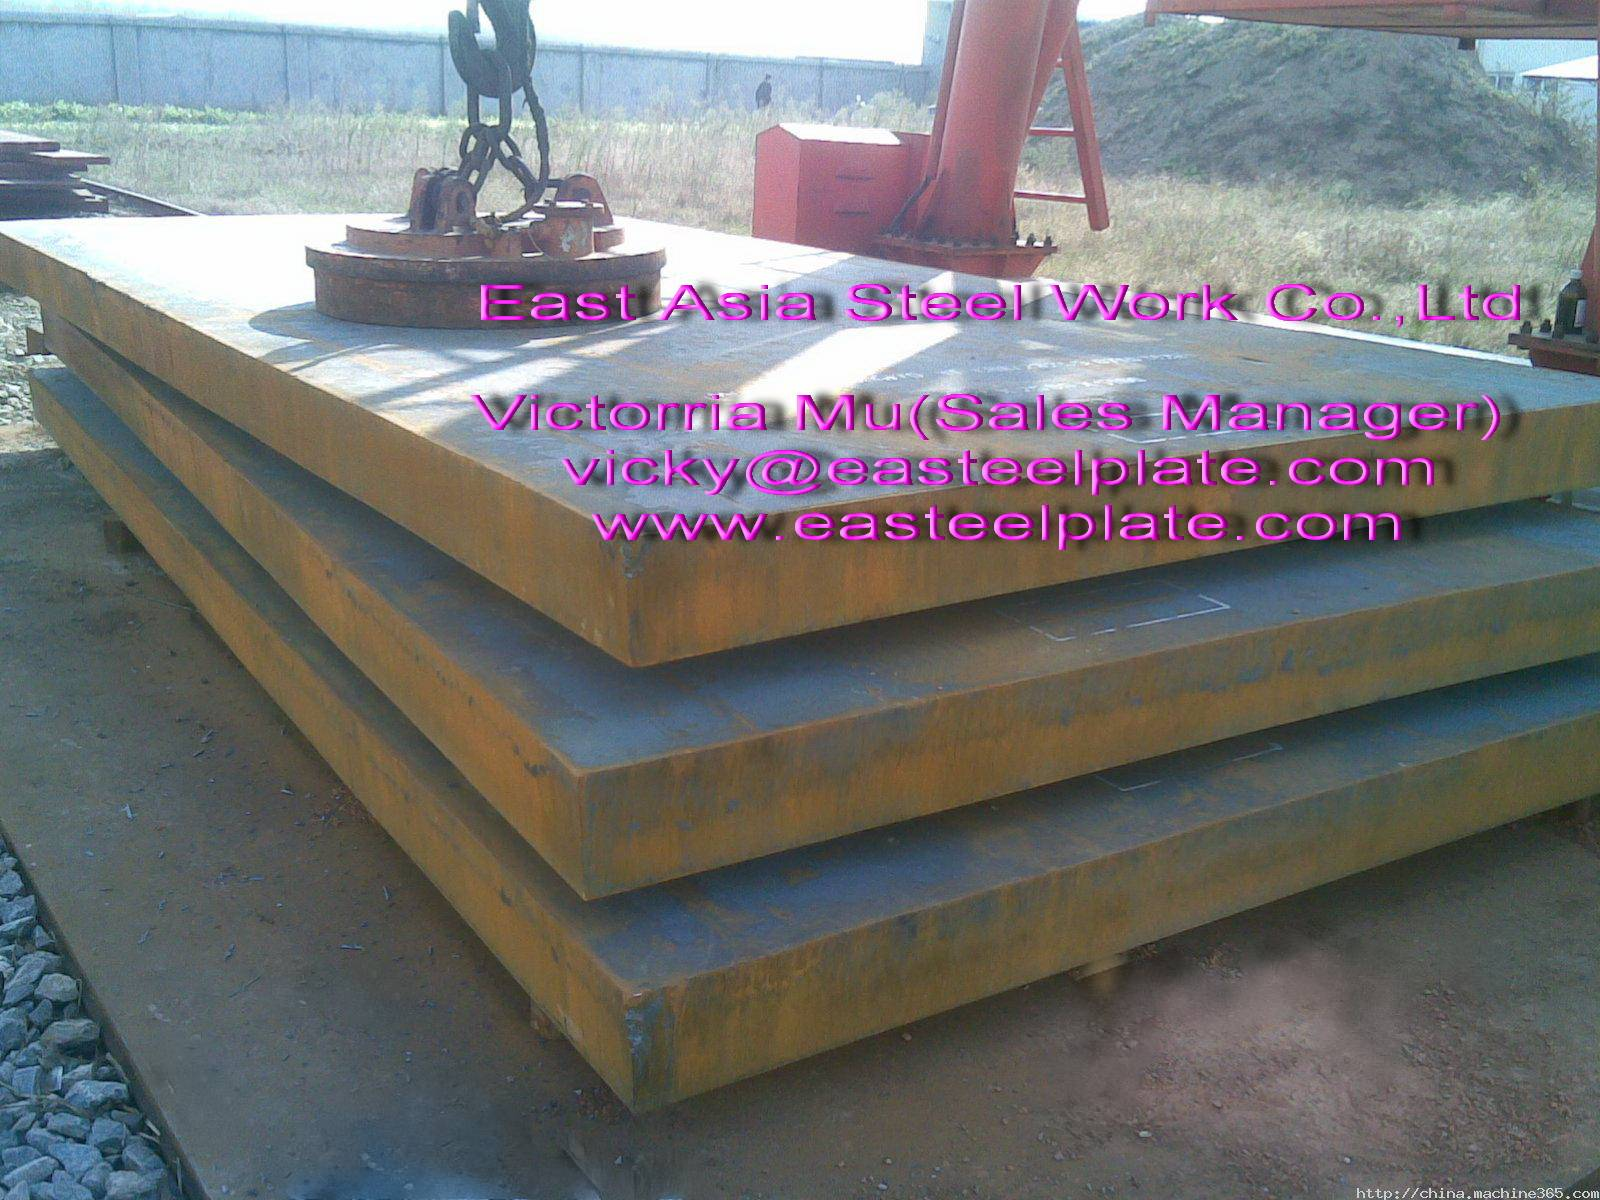 Supply :Steel Plate ABS Grade AH32,steel ABS Grade DH32, ABS Grade EH32 spec,ABS Grade FH32 shipbuid